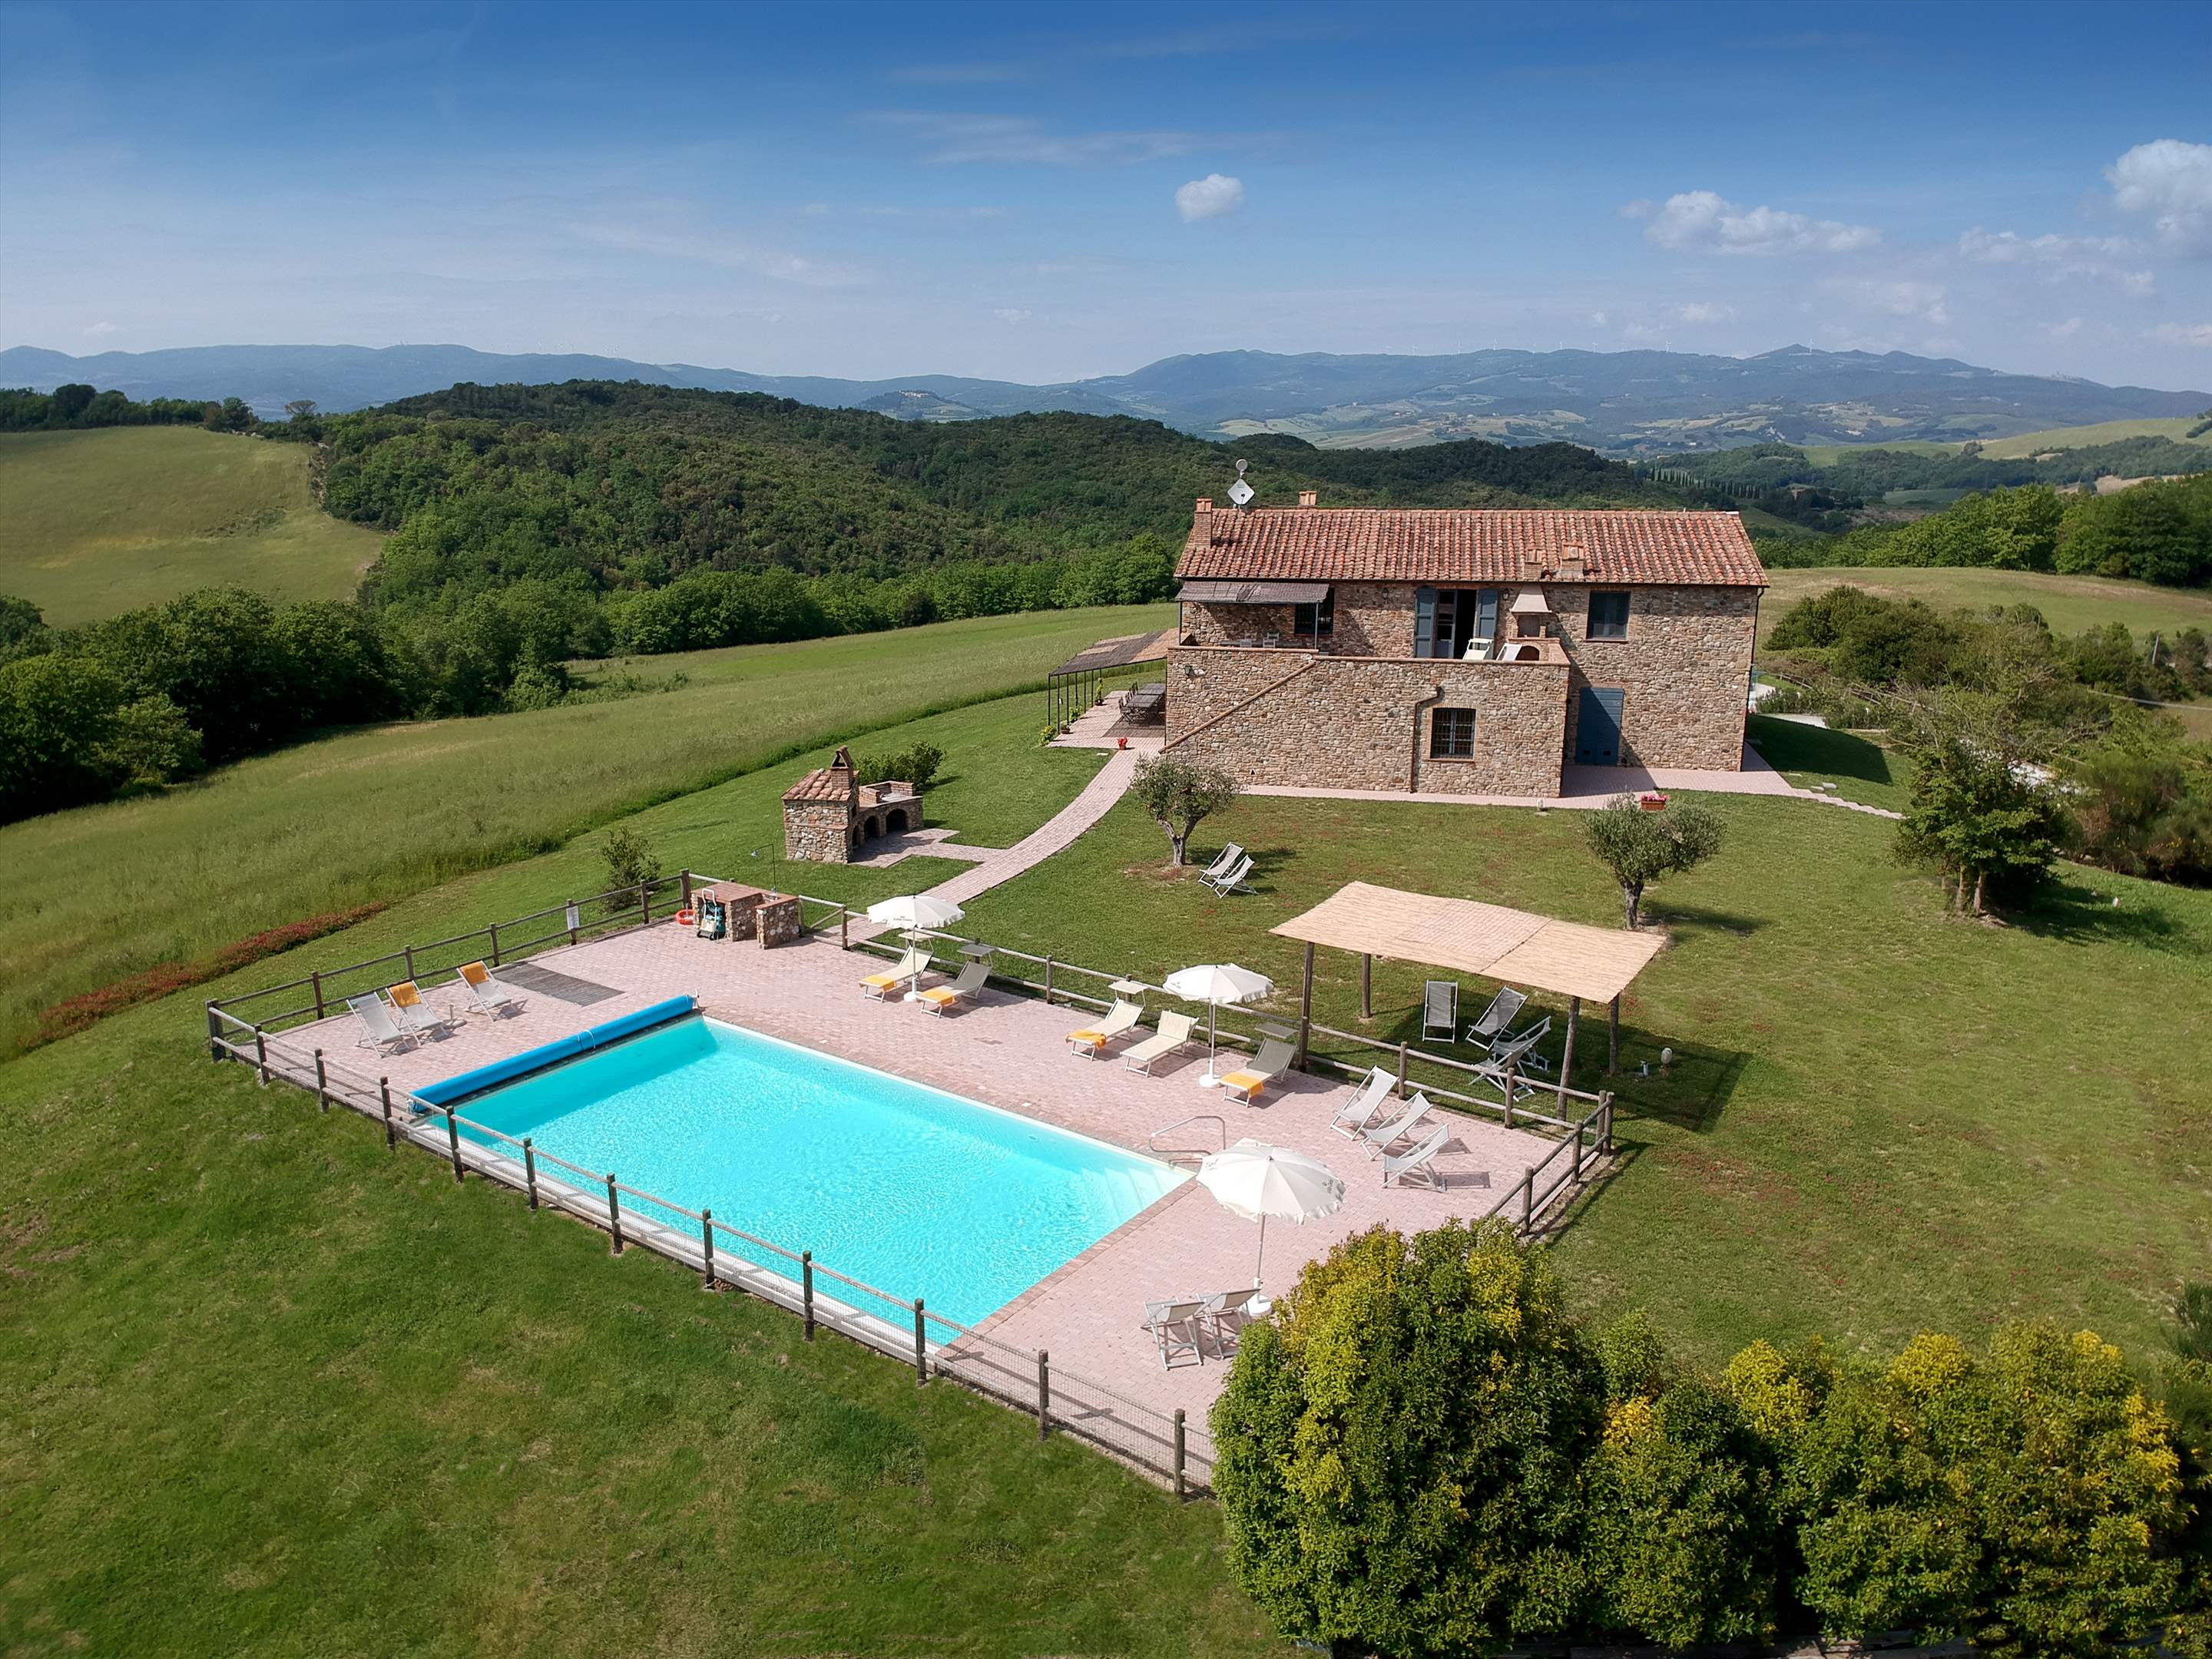 Podere Casacce, Ground Floor, 4 bedroom villa in Tuscany Coast, Tuscany Photo #1